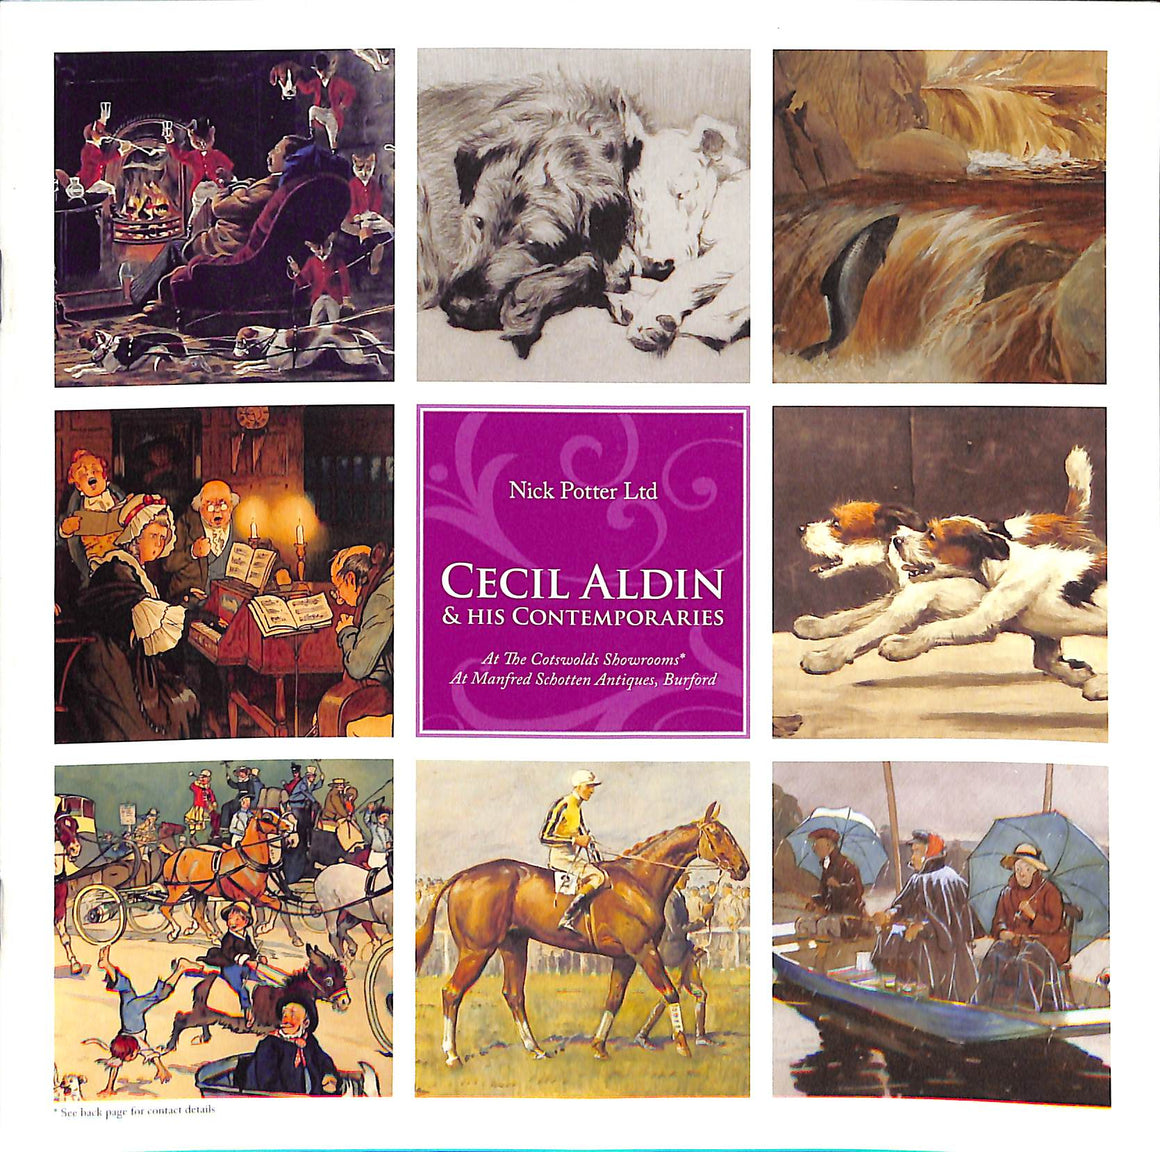 Cecil Aldin & His Contemporaries (Sold!)